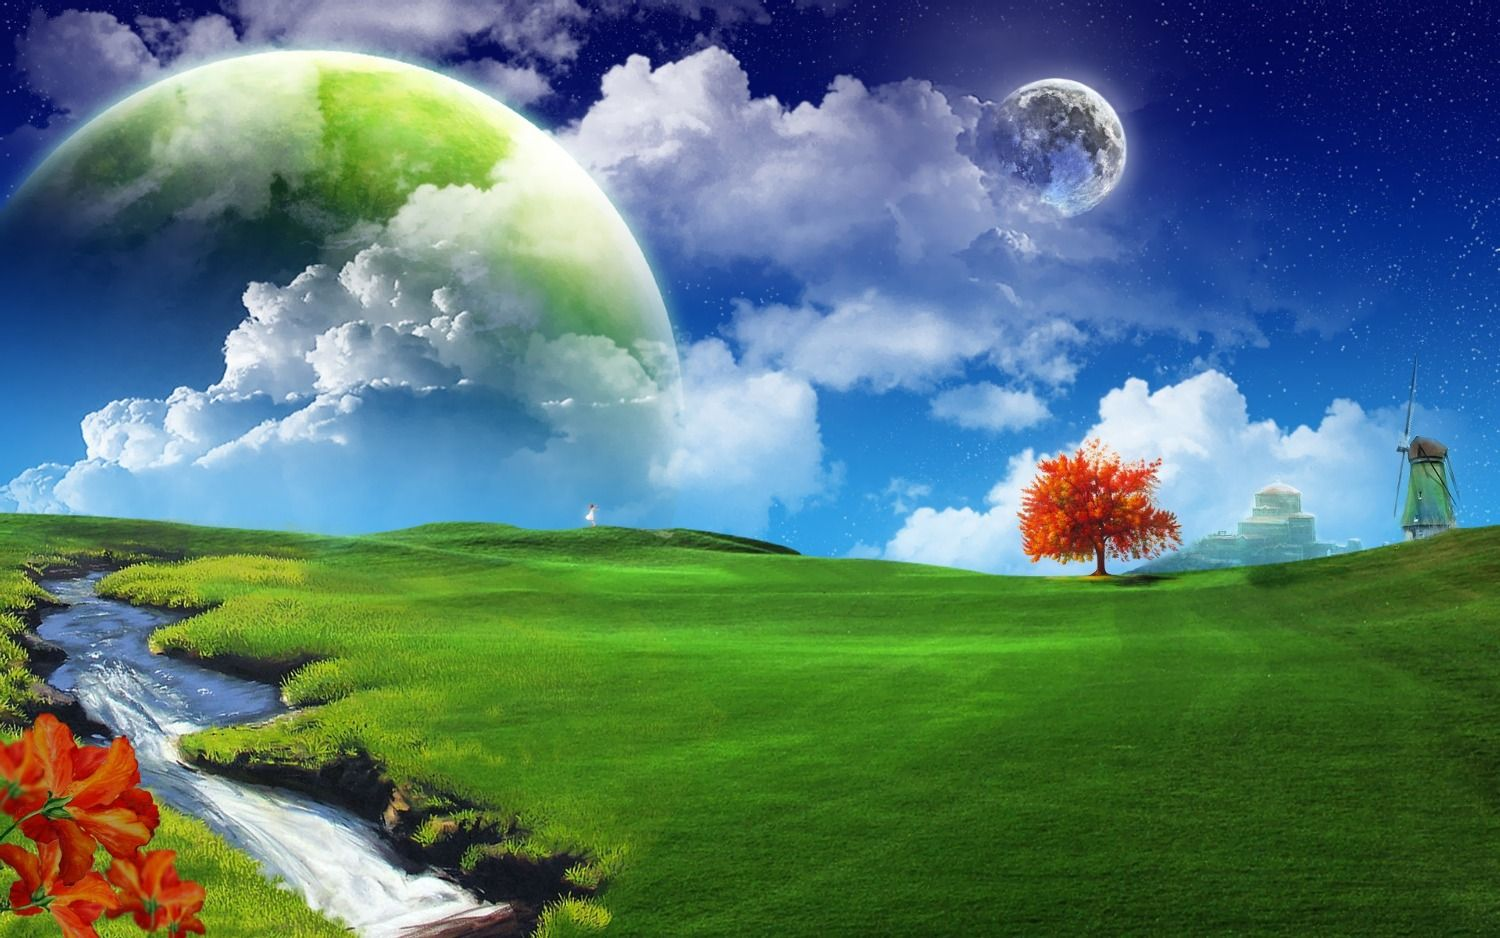 Live Beautiful Nature Wallpaper Background 1 Hd Nature Wallpapers Nature Desktop Landscape Wallpaper